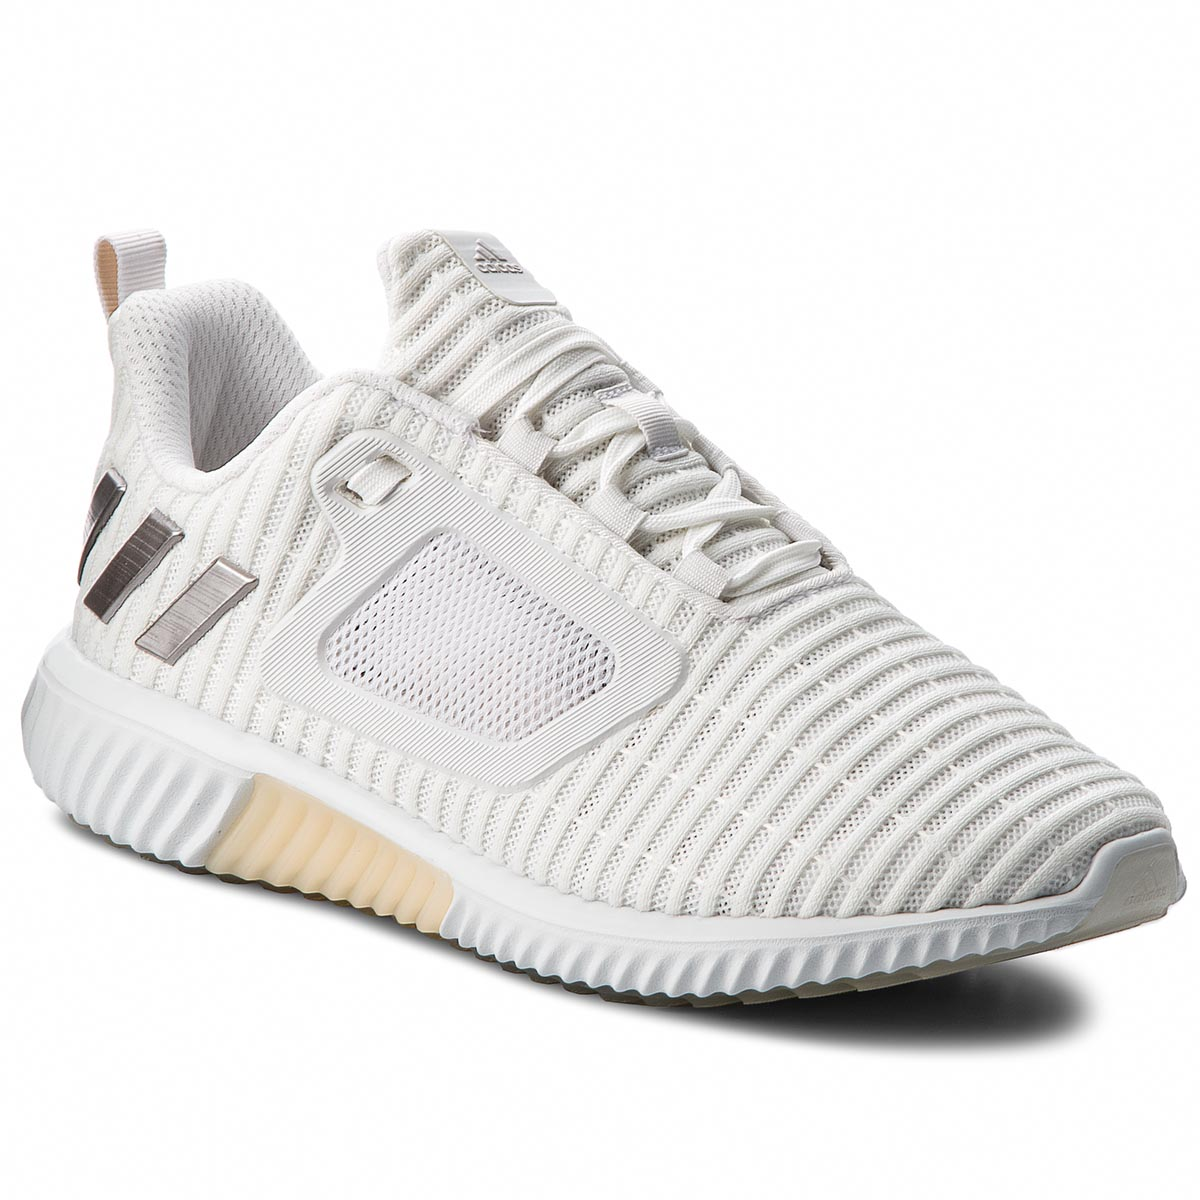 Buty adidas - Climacool Cw BB6555 Crywht/Plamet/Linen